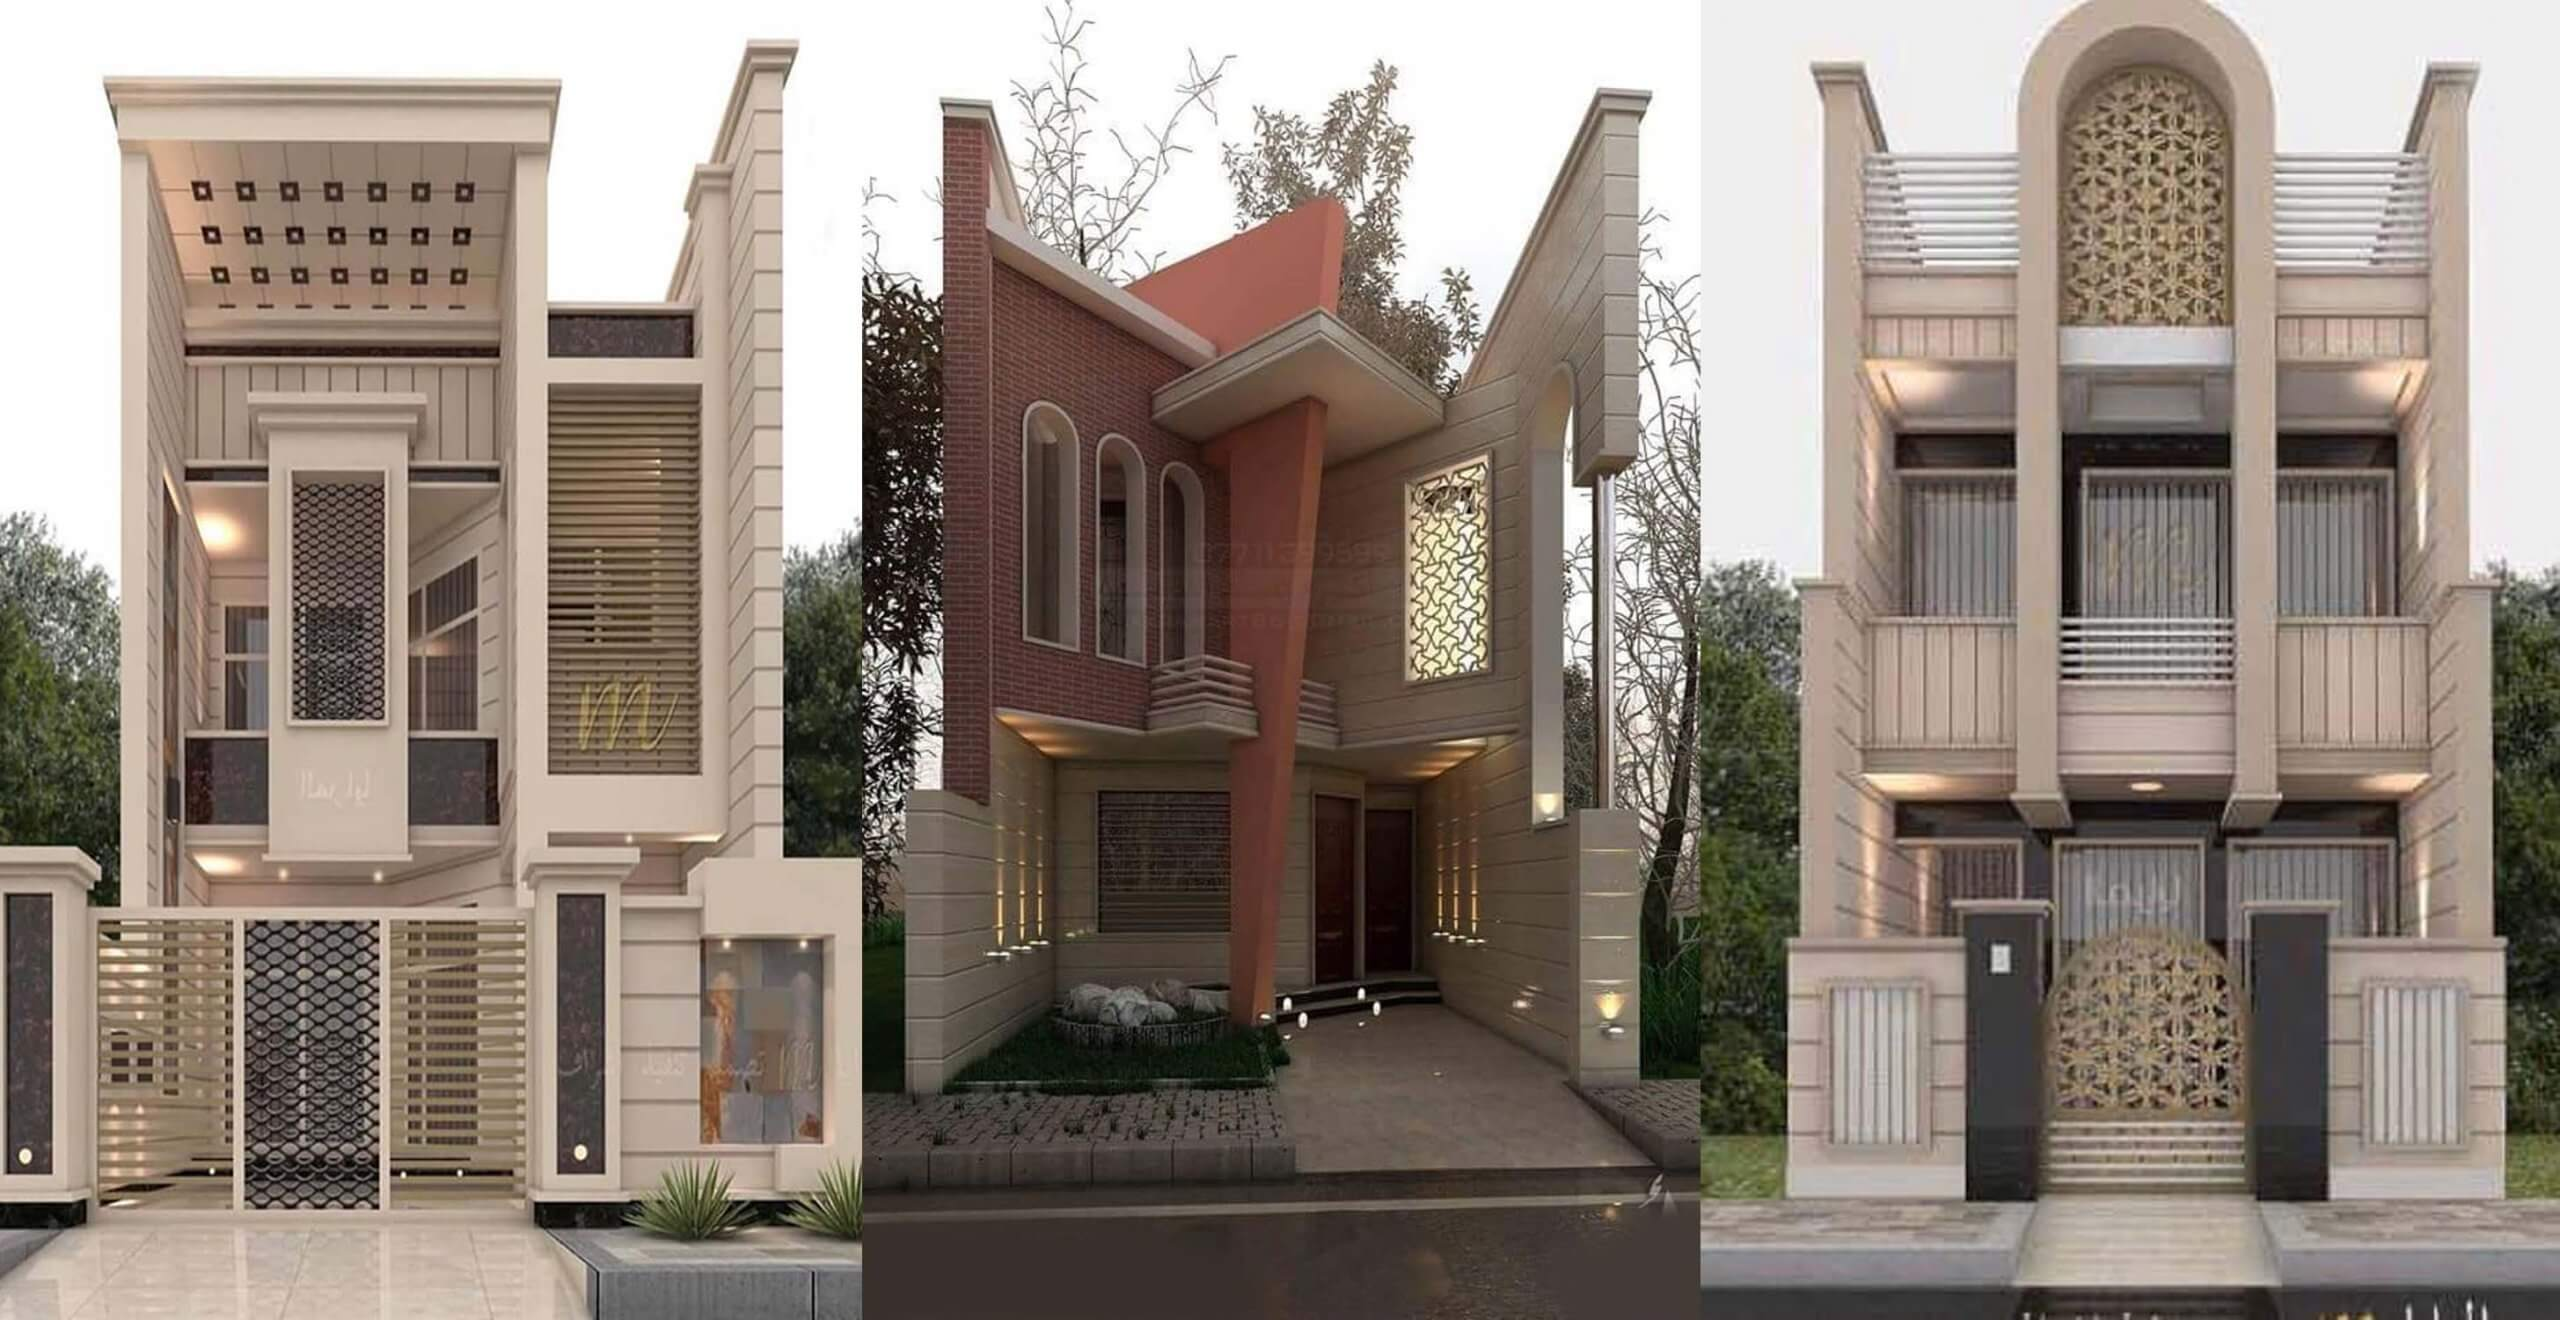 Top 35 Cool House Design Ideas Ever Built - Engineering ...